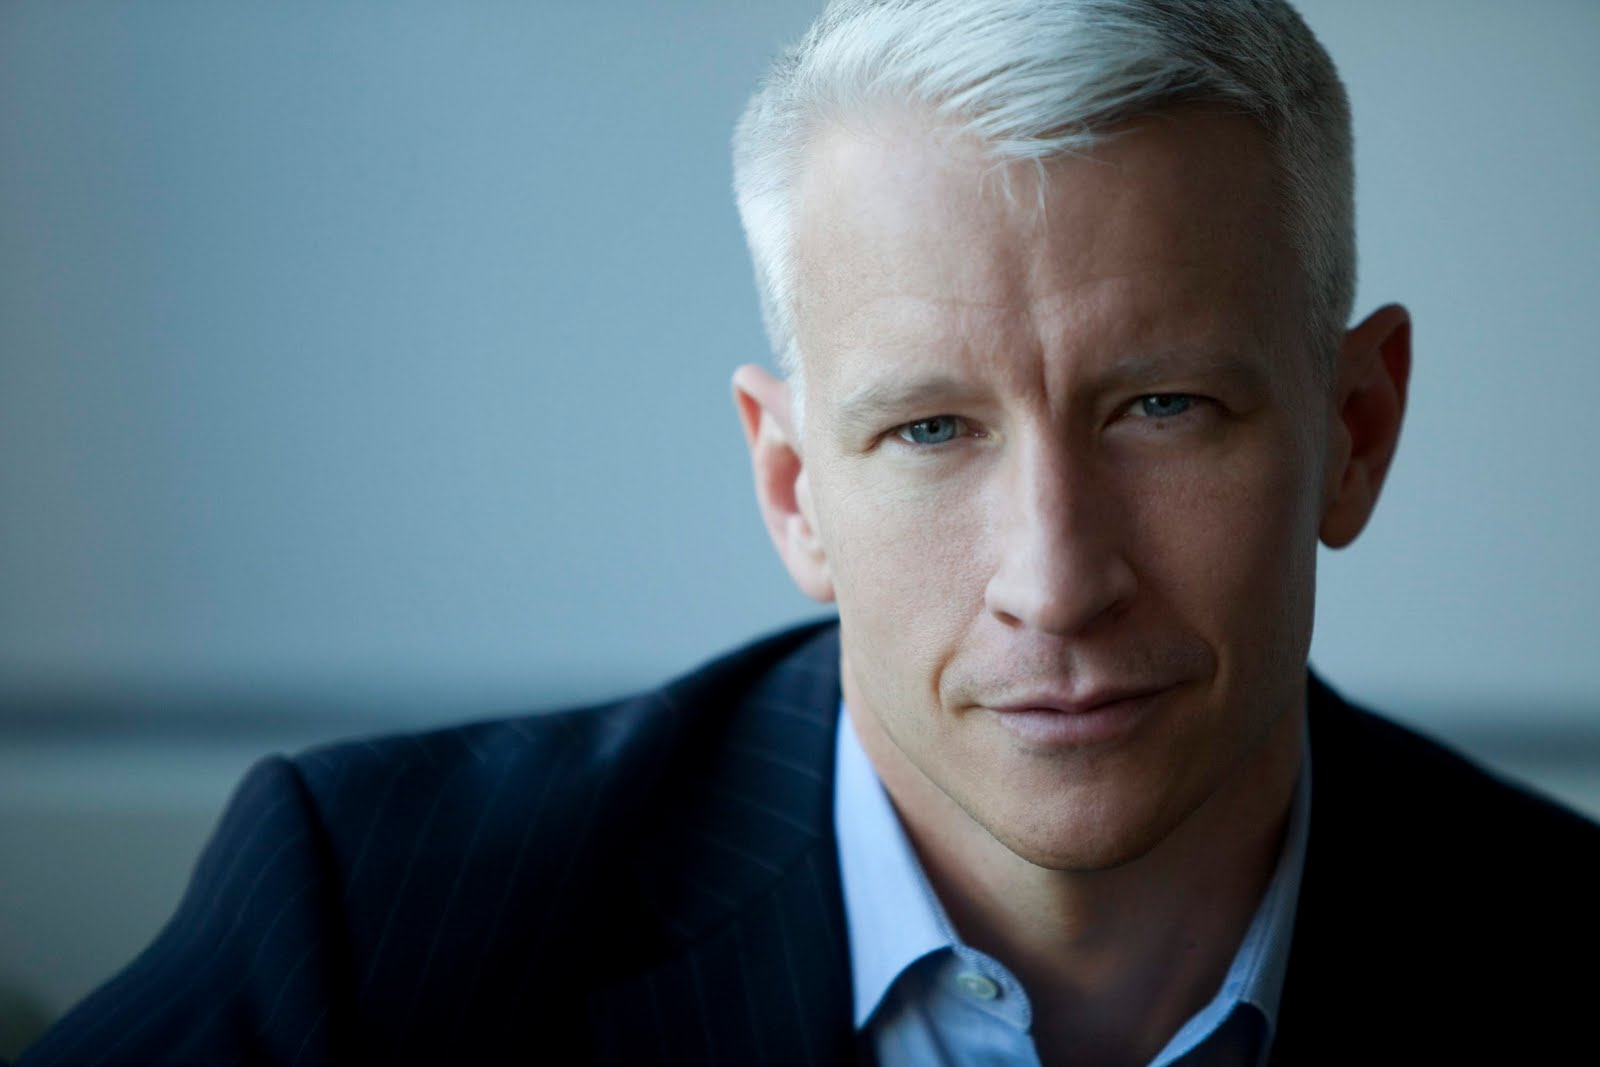 Anderson Cooper, AKA Coop. Gets a hair cut every 8 hours. Only wears Vanderbilt jeans when not on set.